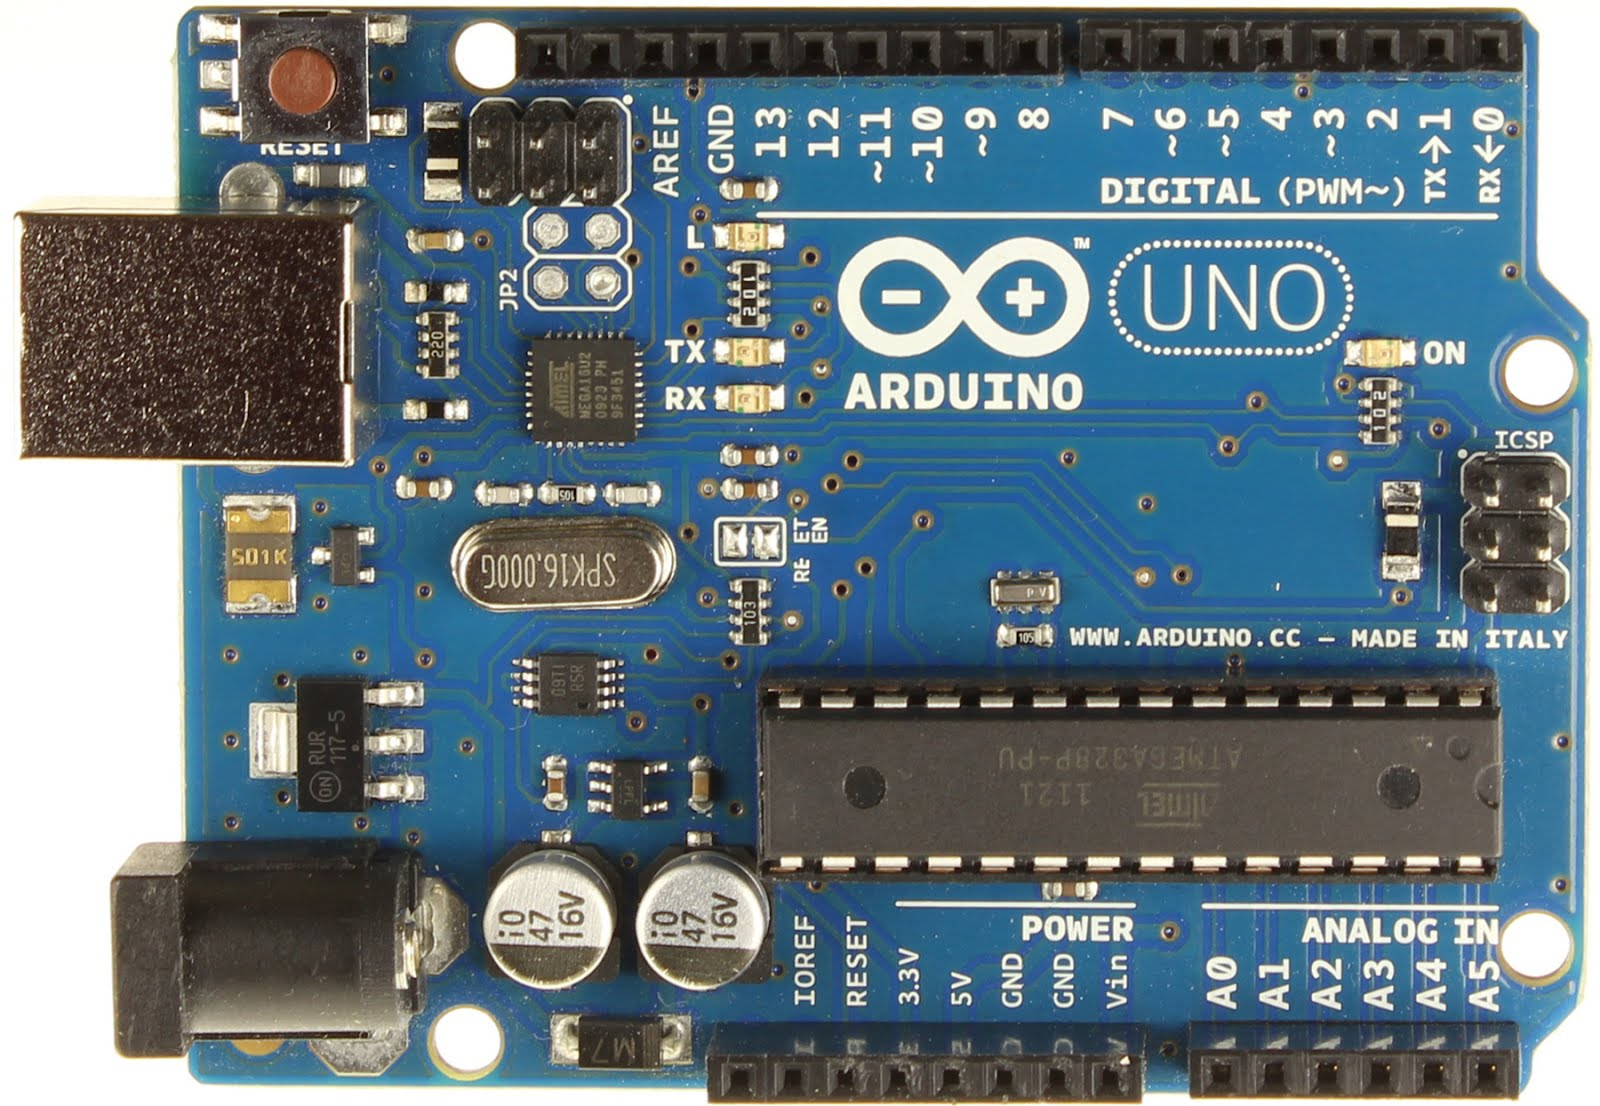 Marie Sester Blog Analog Integrated Circuits Batteries Not Needed The Mitre Other Than These We Used An Arduino Uno Microcontroller Arduinocc